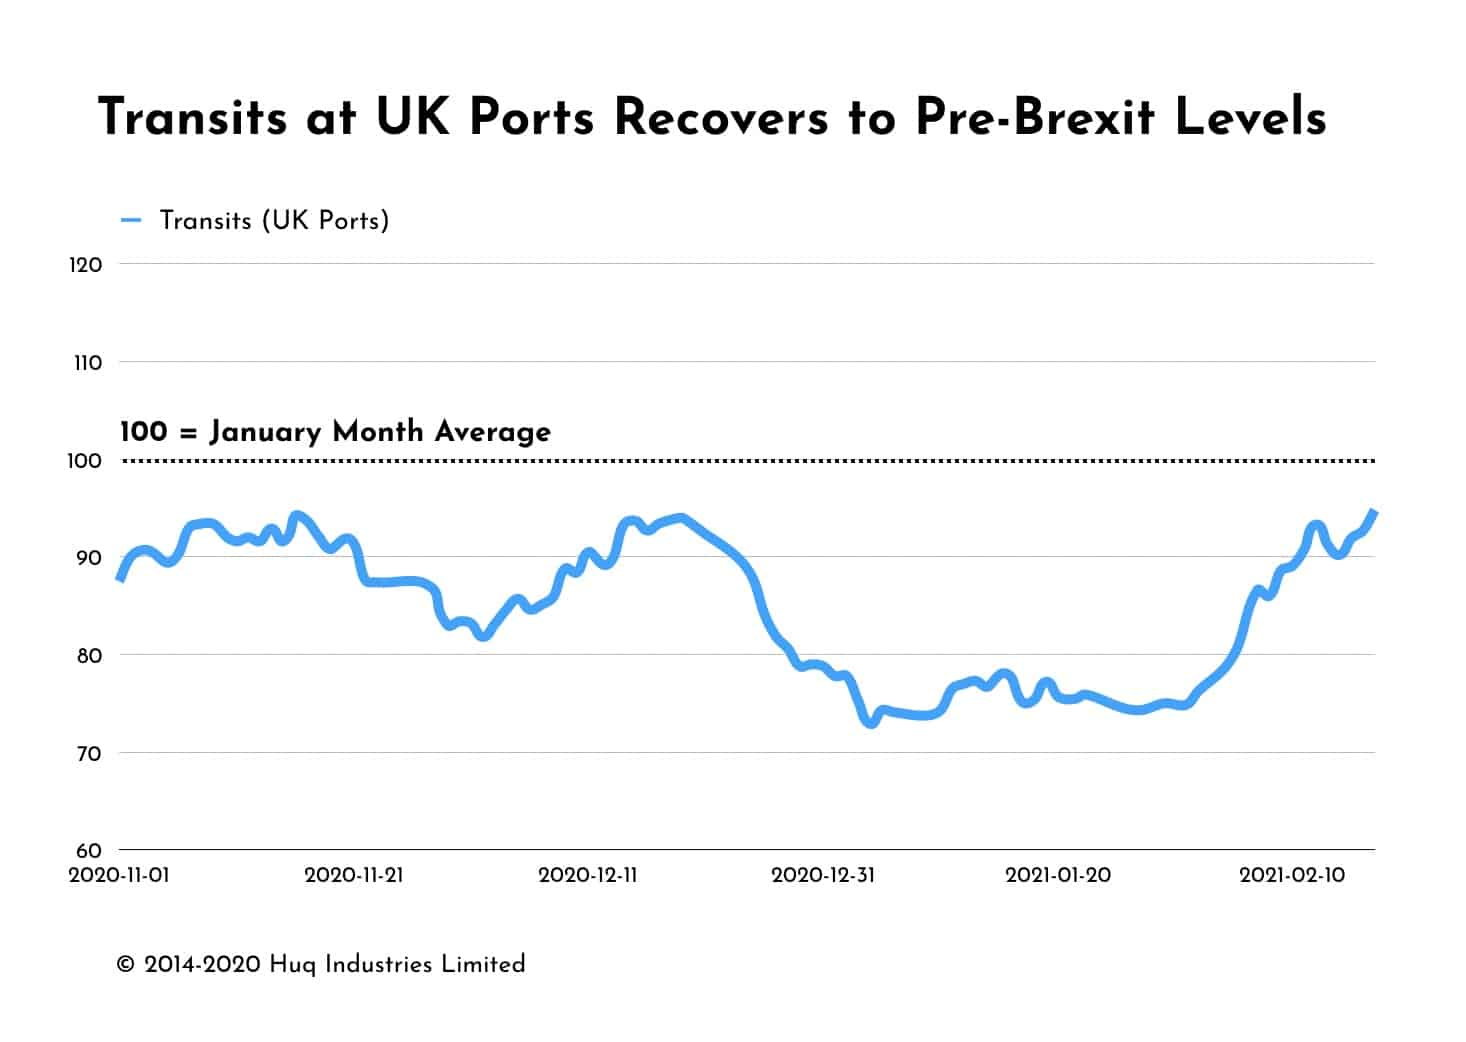 UK Port Transits Recover to Pre-Brexit Levels